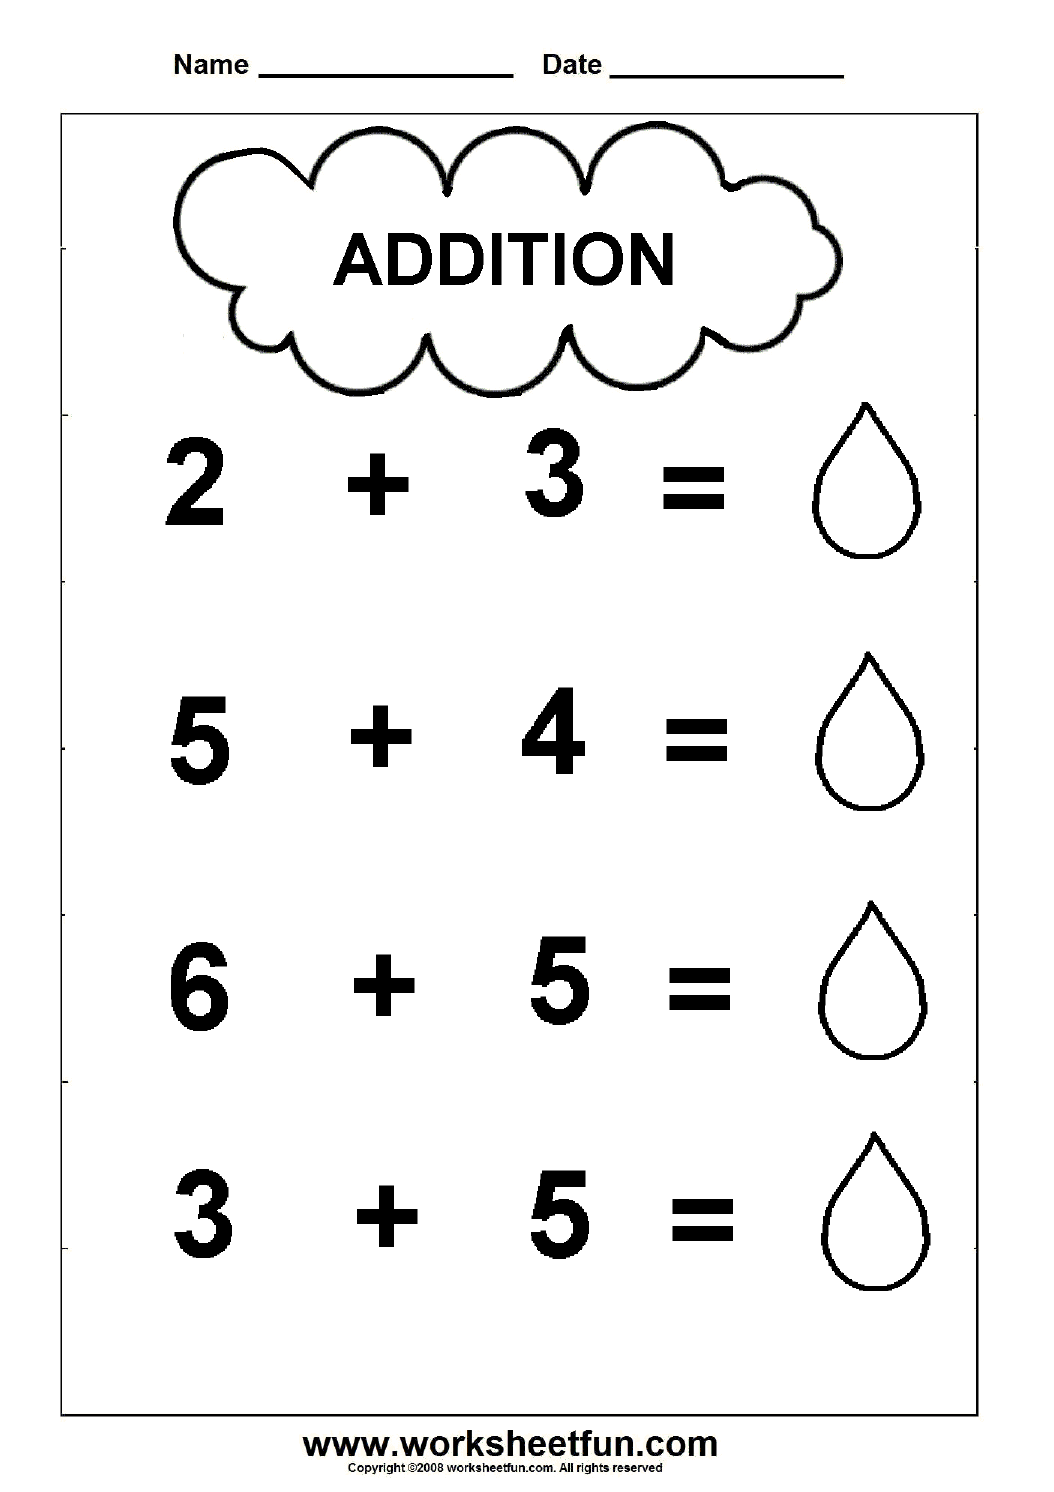 Addition Worksheets Kindergarten Worksheets – Worksheet for Addition